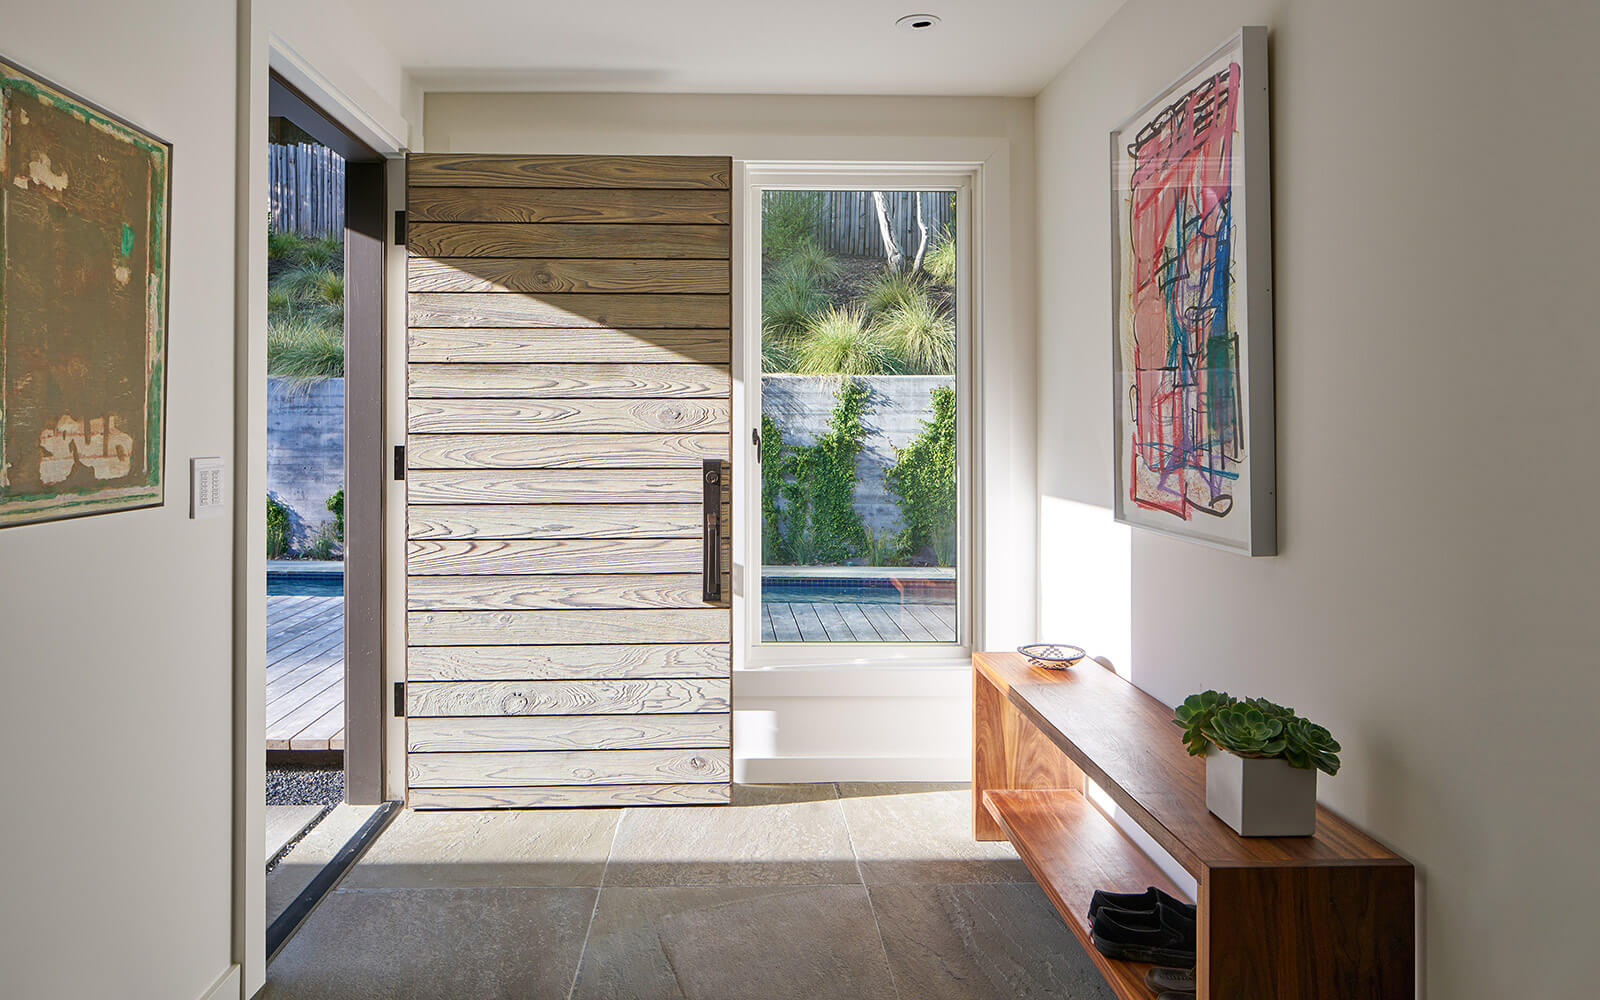 studio vara residential Kentfield entry wood door